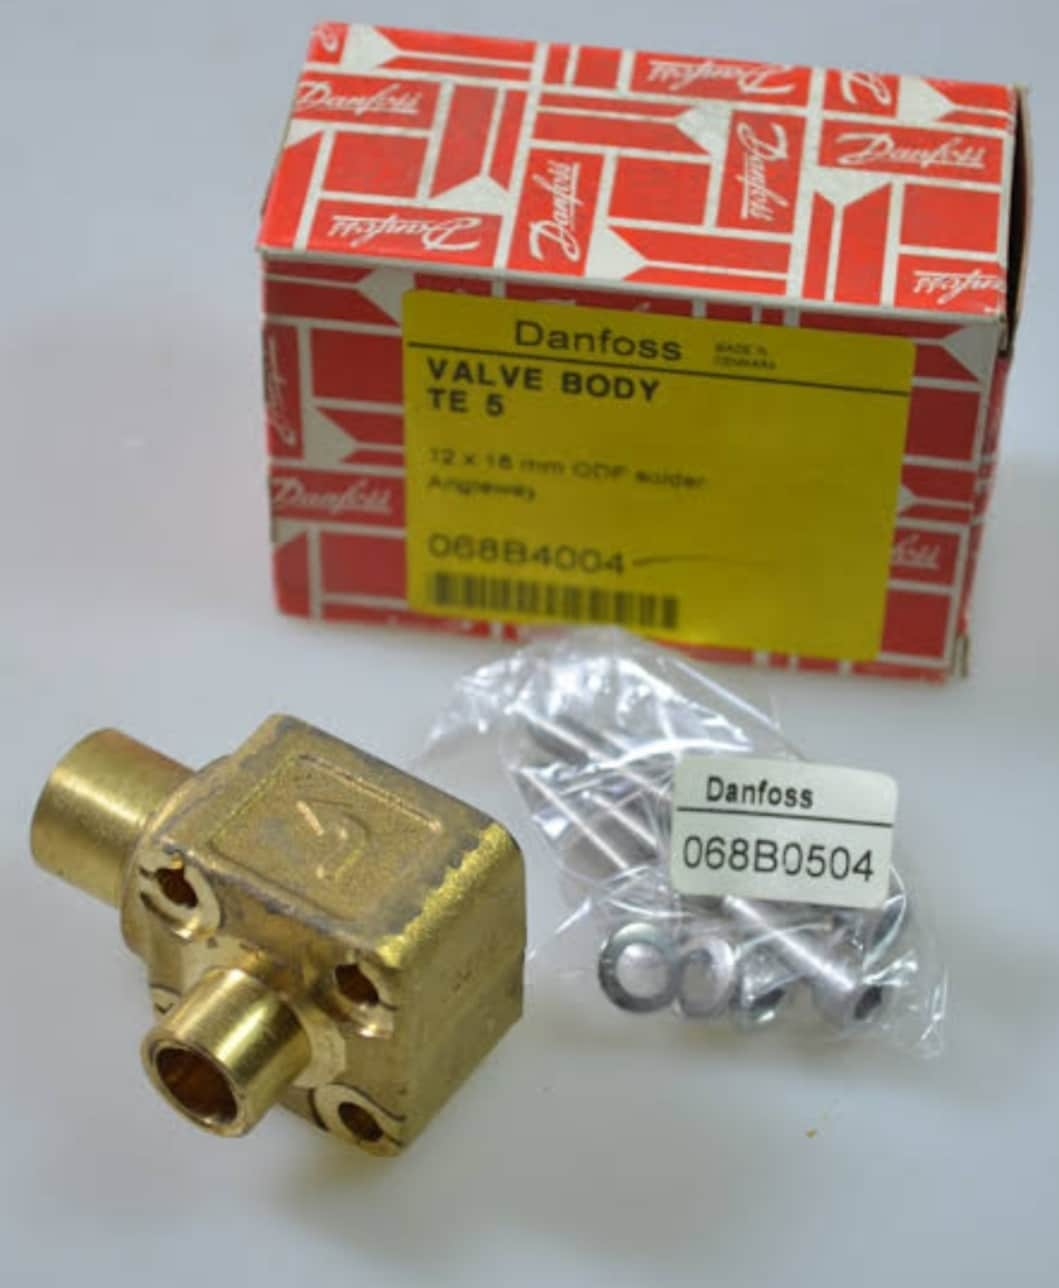 DANFOSS TE5 VALVE BODY [1/2 X 5/8 SOLDER ANGLE CONNECTION][067B4009]